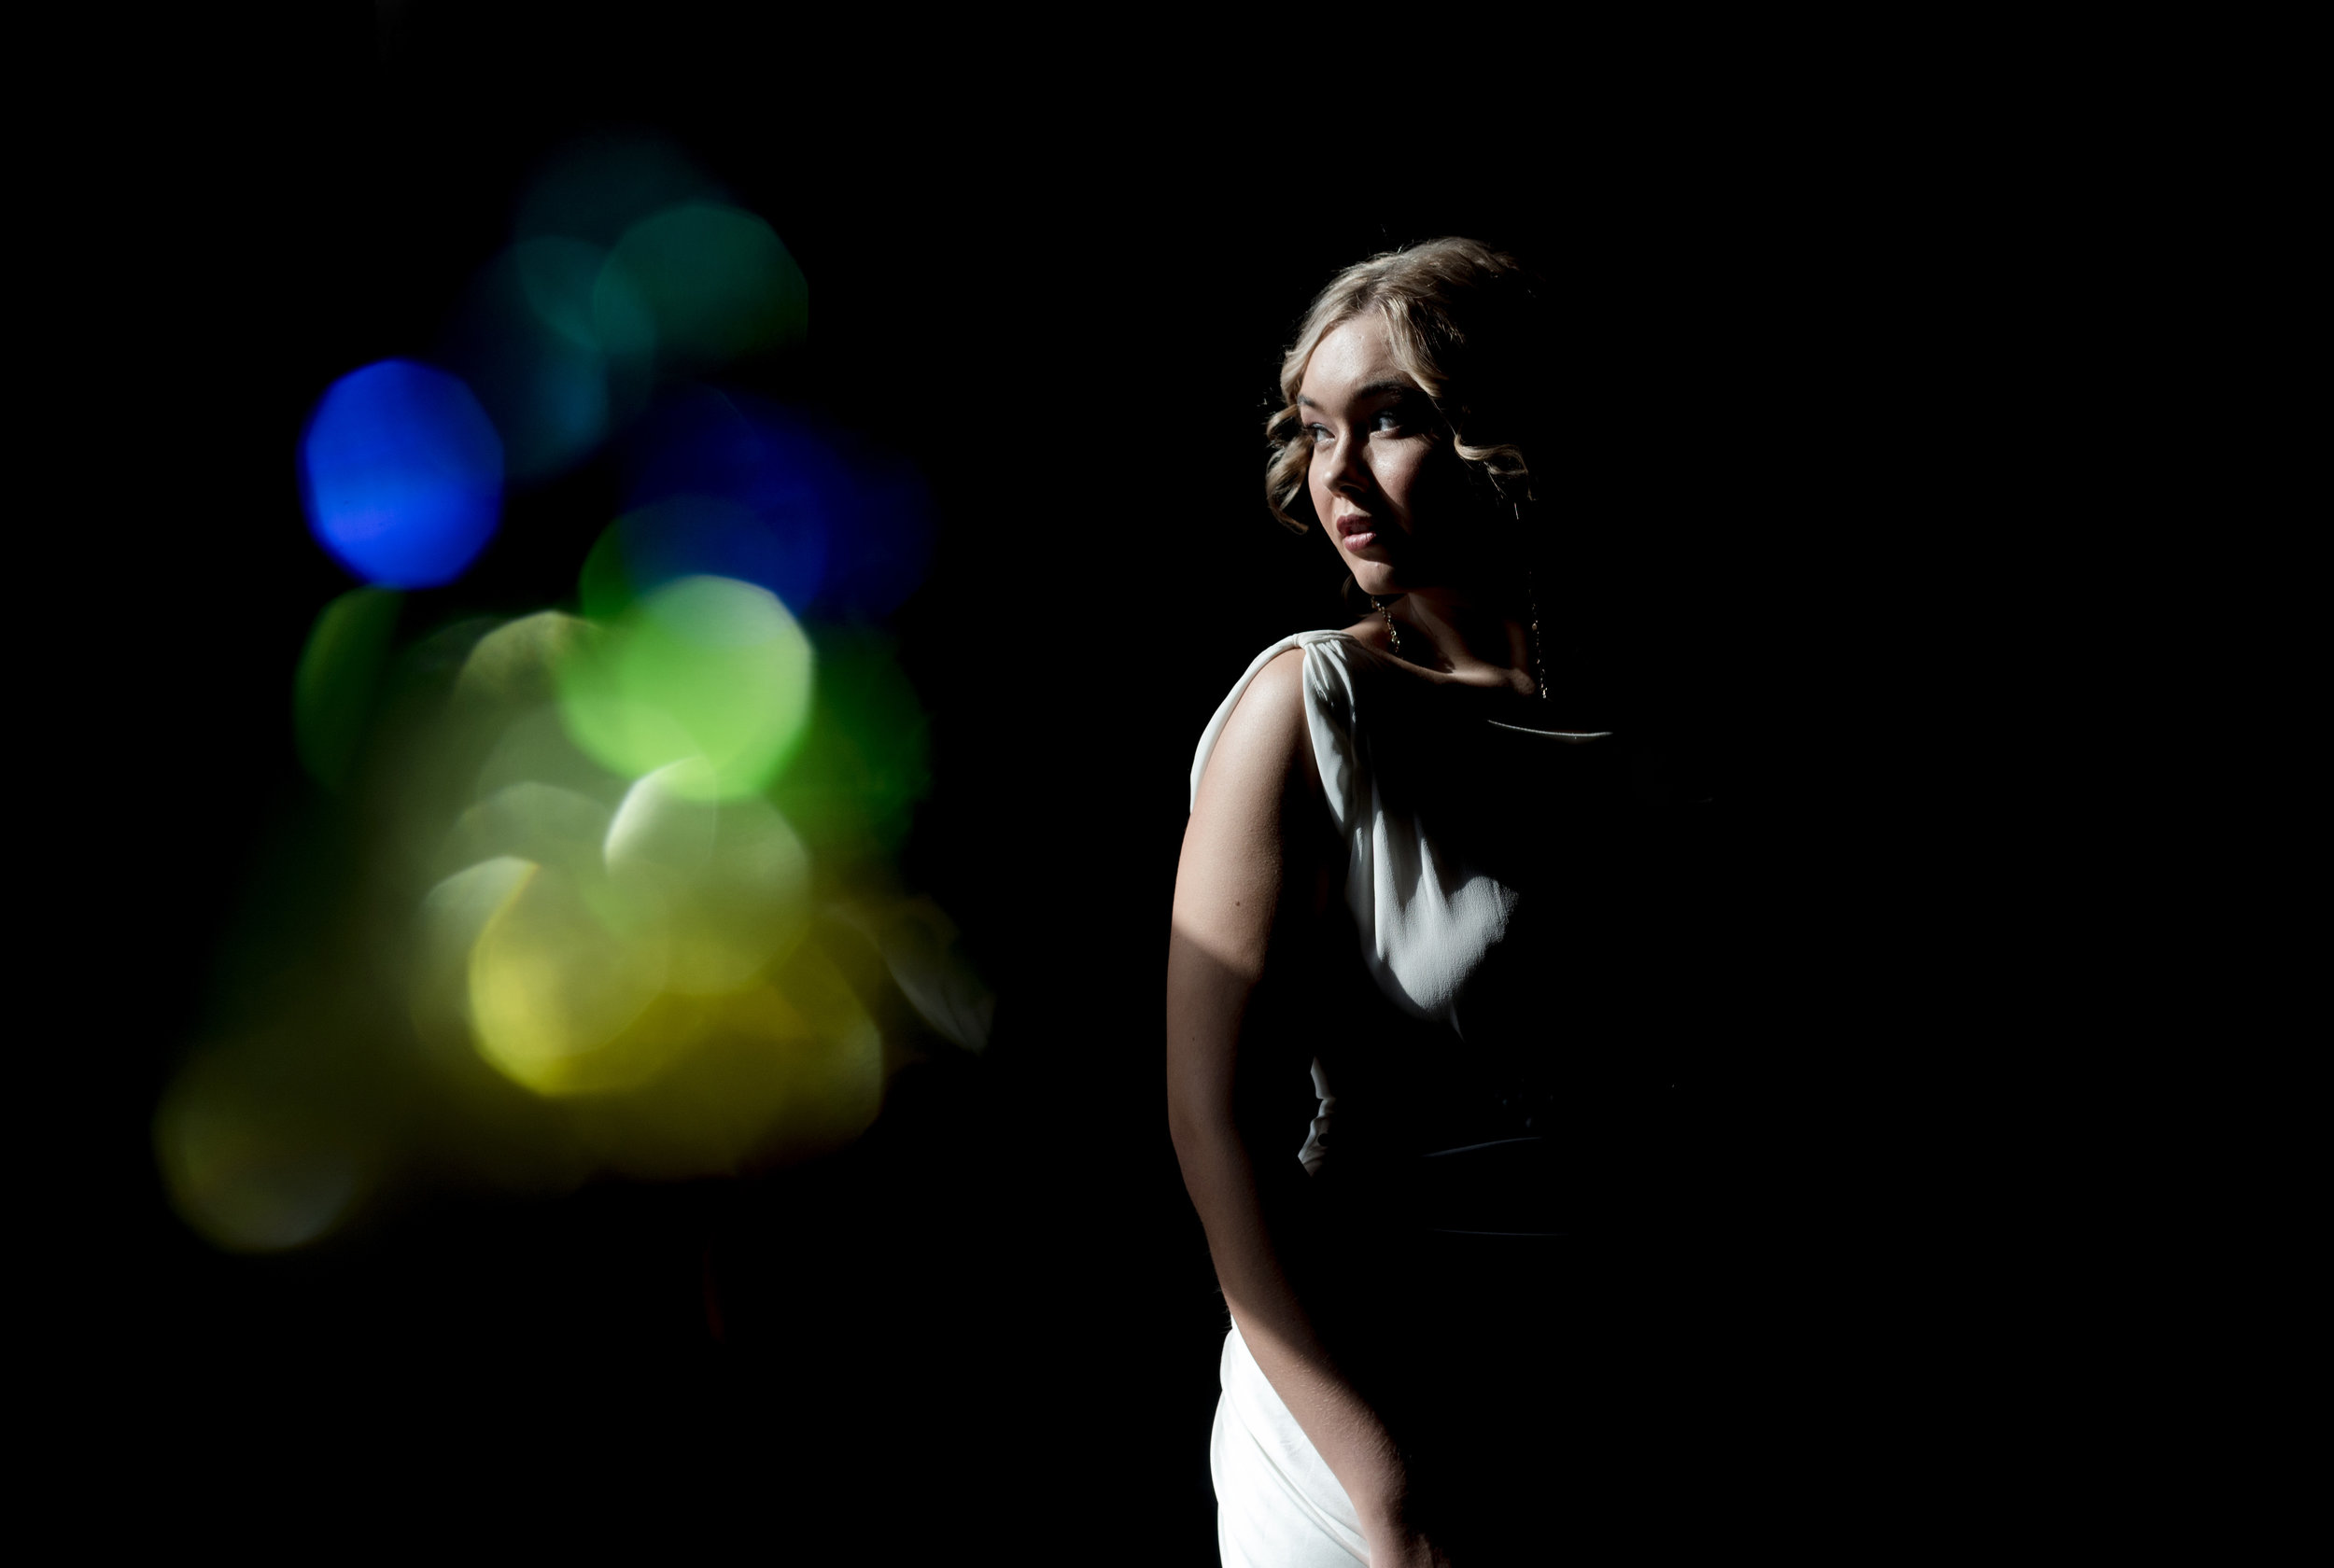 the bride stands in the window while light from the sun reflects through a prism, casting colour in the image